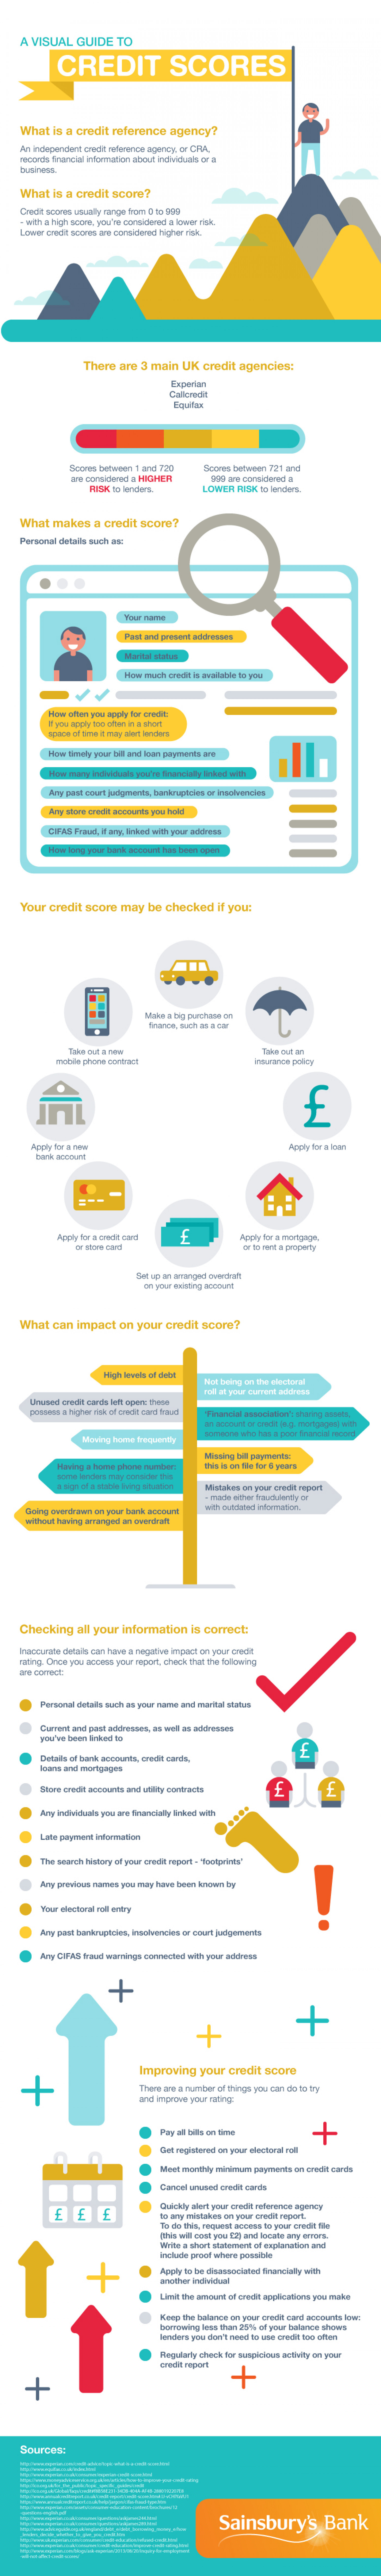 Guide to credit scores Infographic